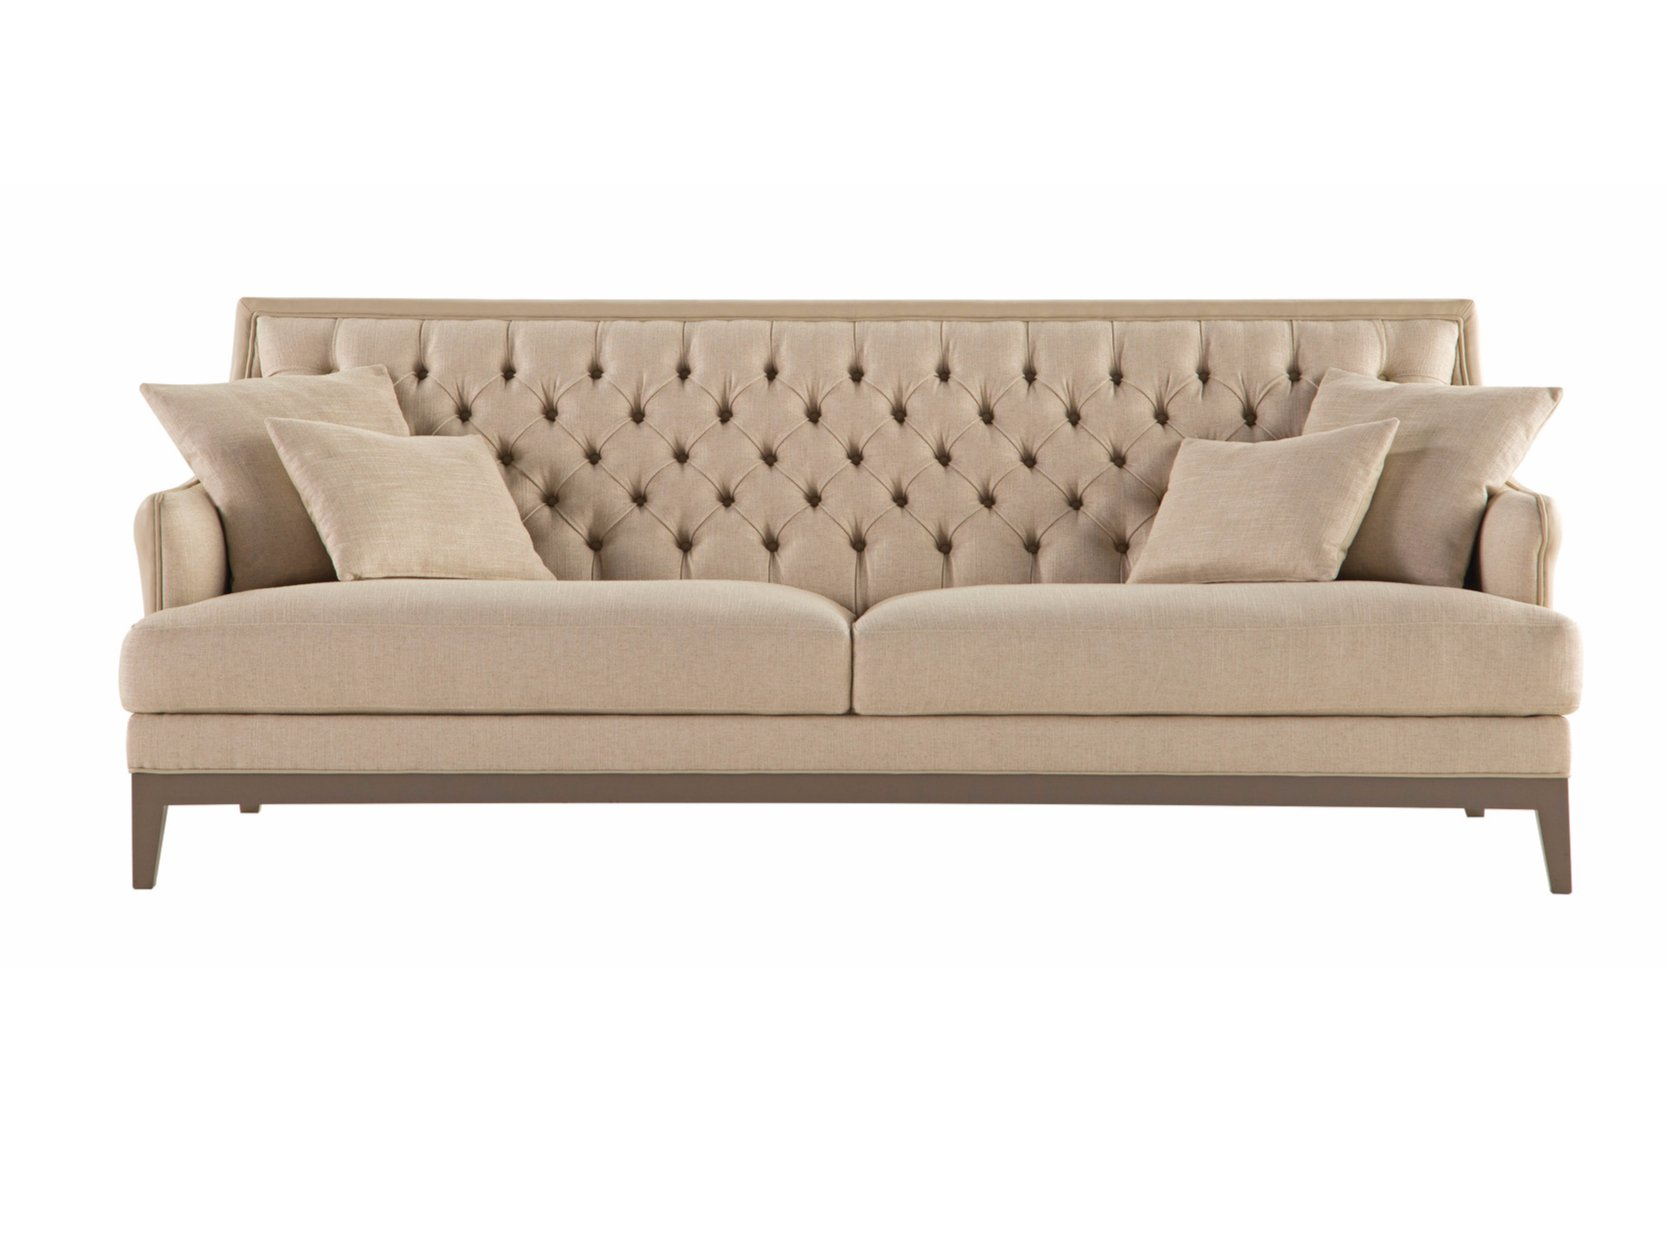 Epoq canap collection epoq by roche bobois design les for Canape lit convertible roche bobois